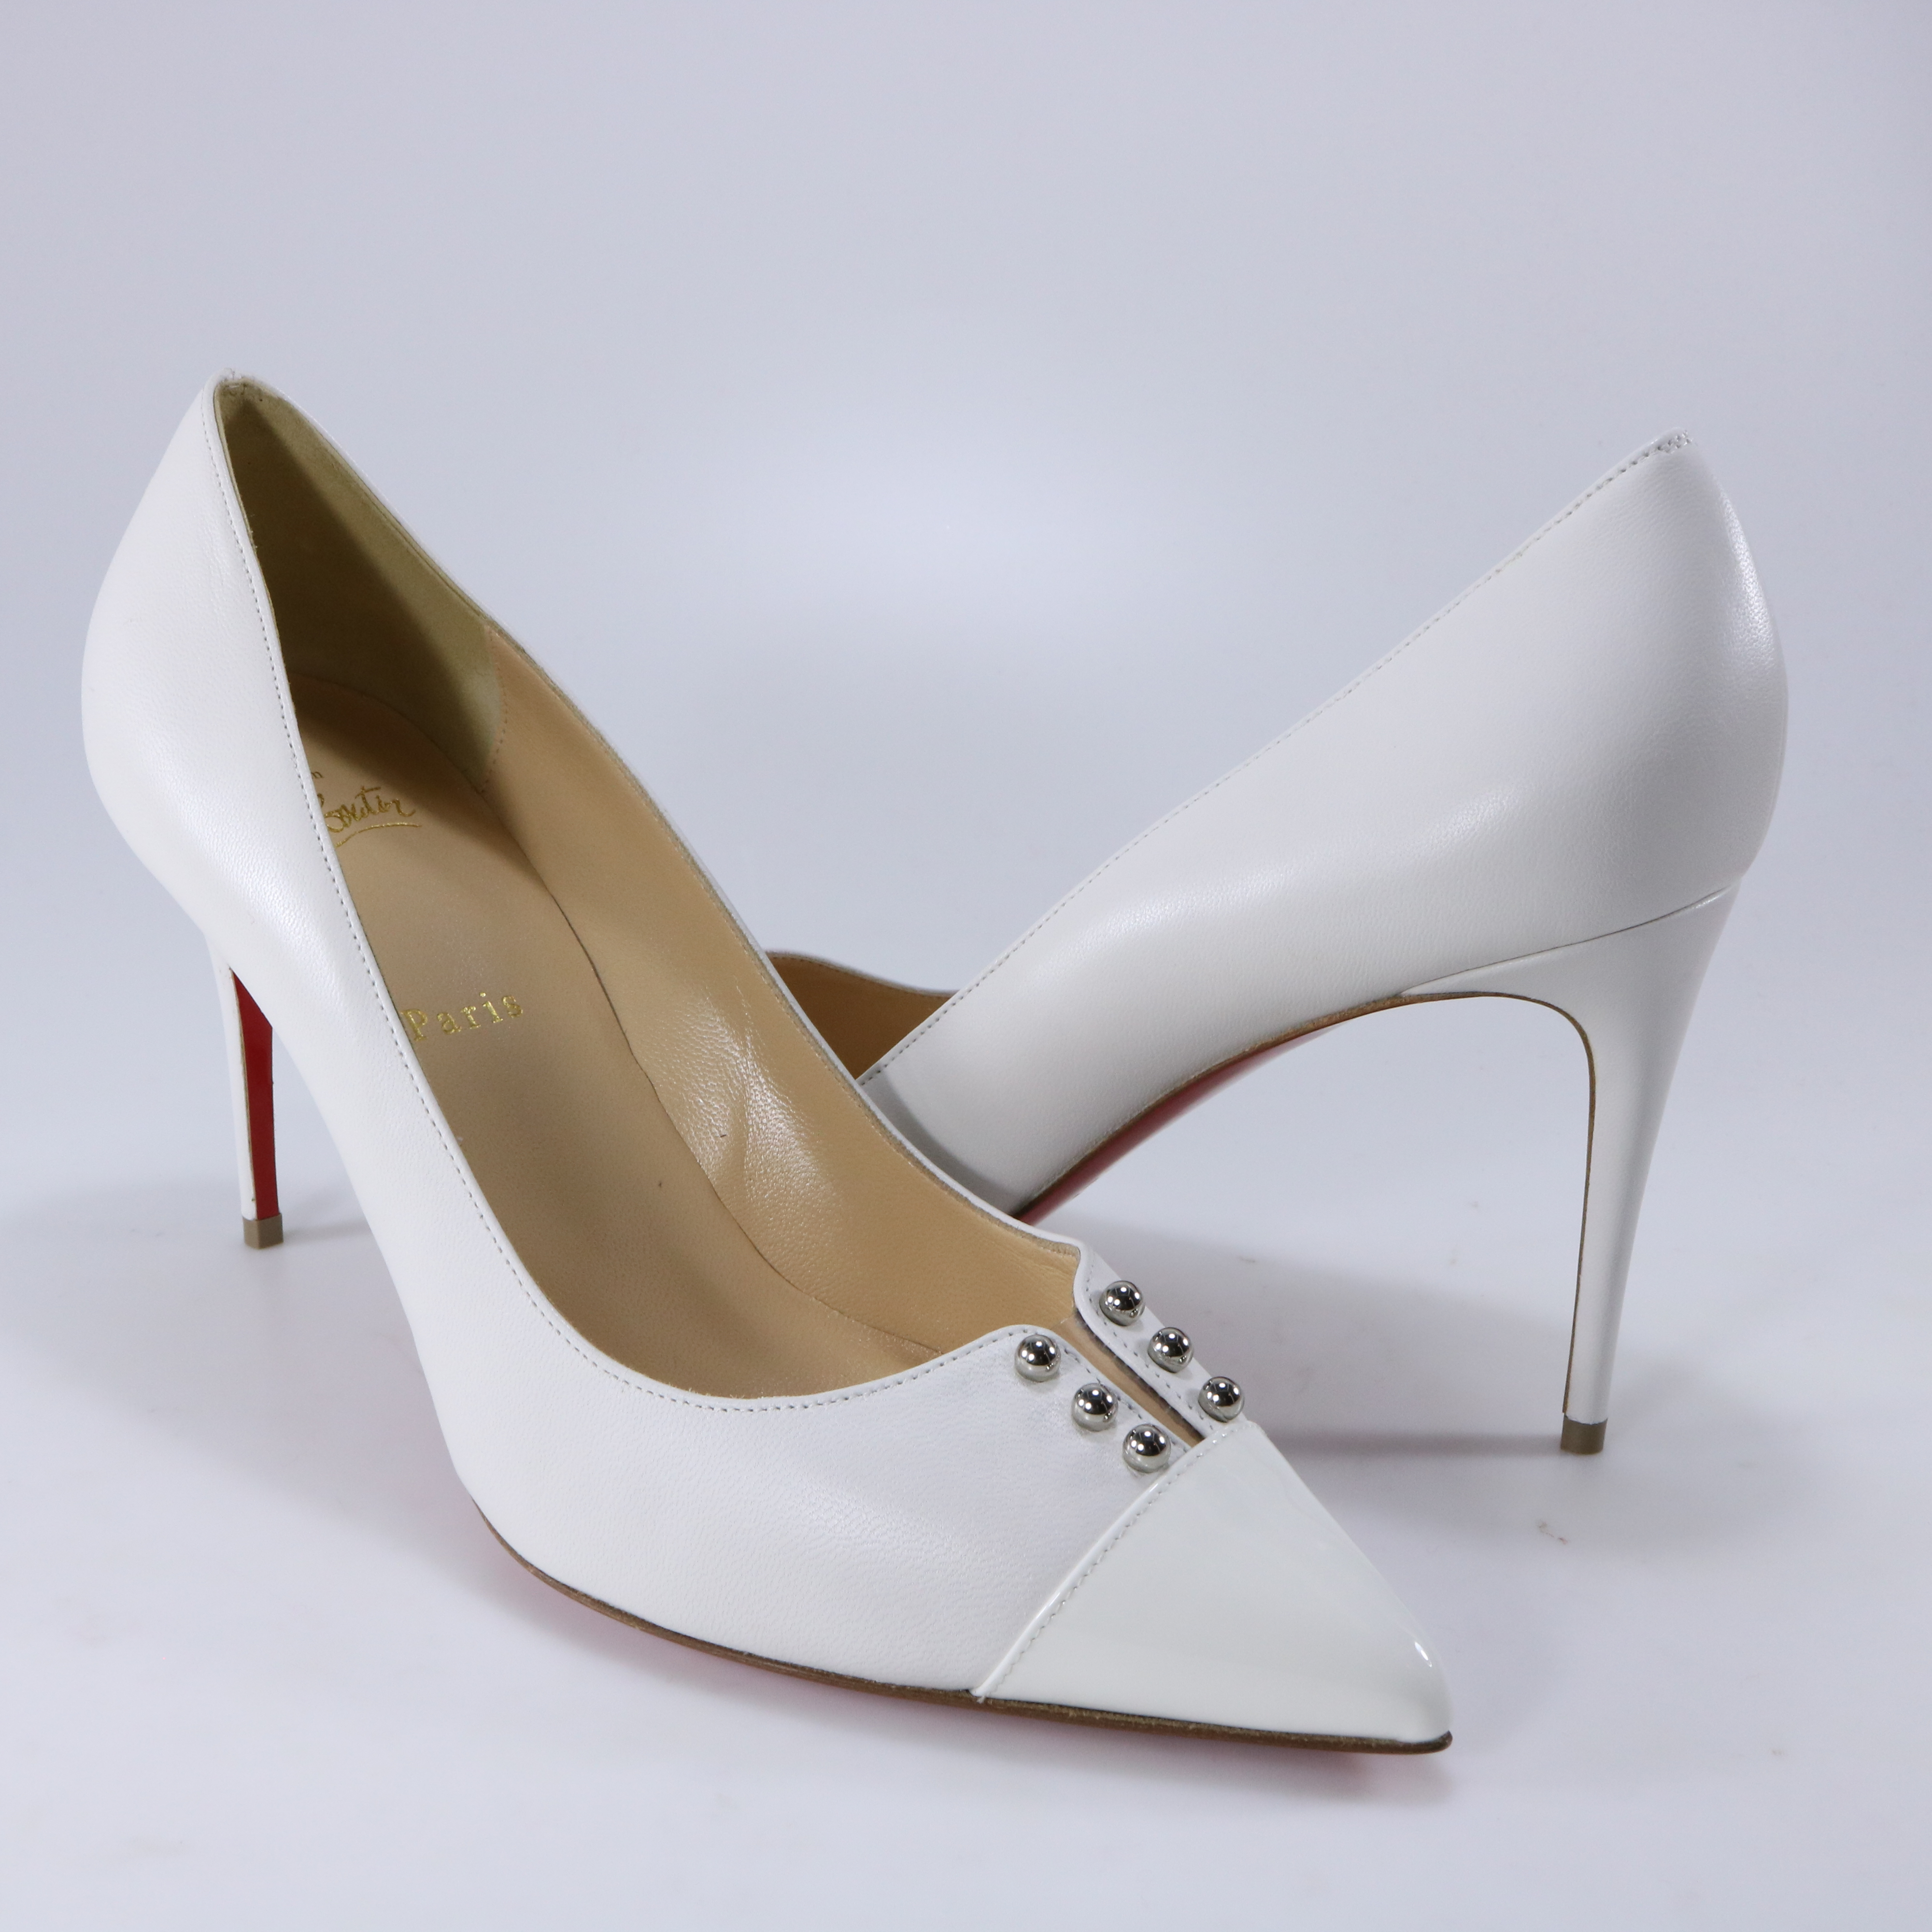 new products 67a5c 8b234 Christian Louboutin 41 Predupump 85mm White Nappa Leather ...